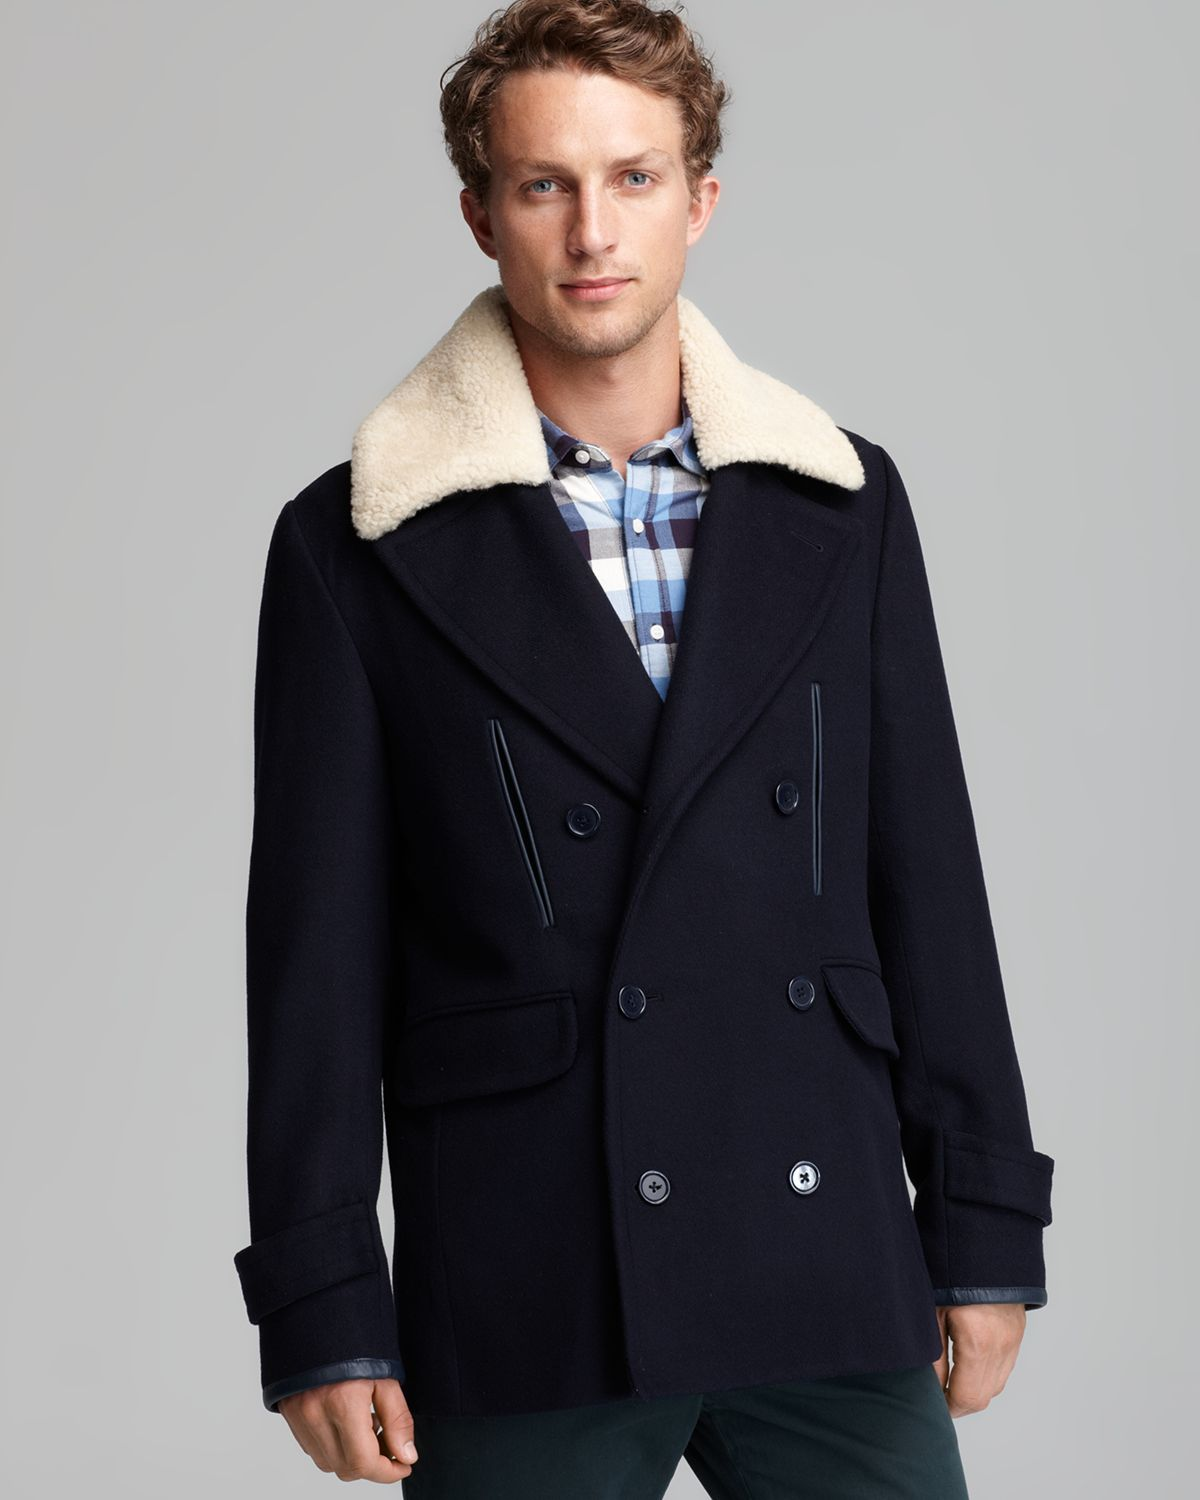 Shipley & halmos Farrand Shearling Collar Coat in Blue for Men | Lyst